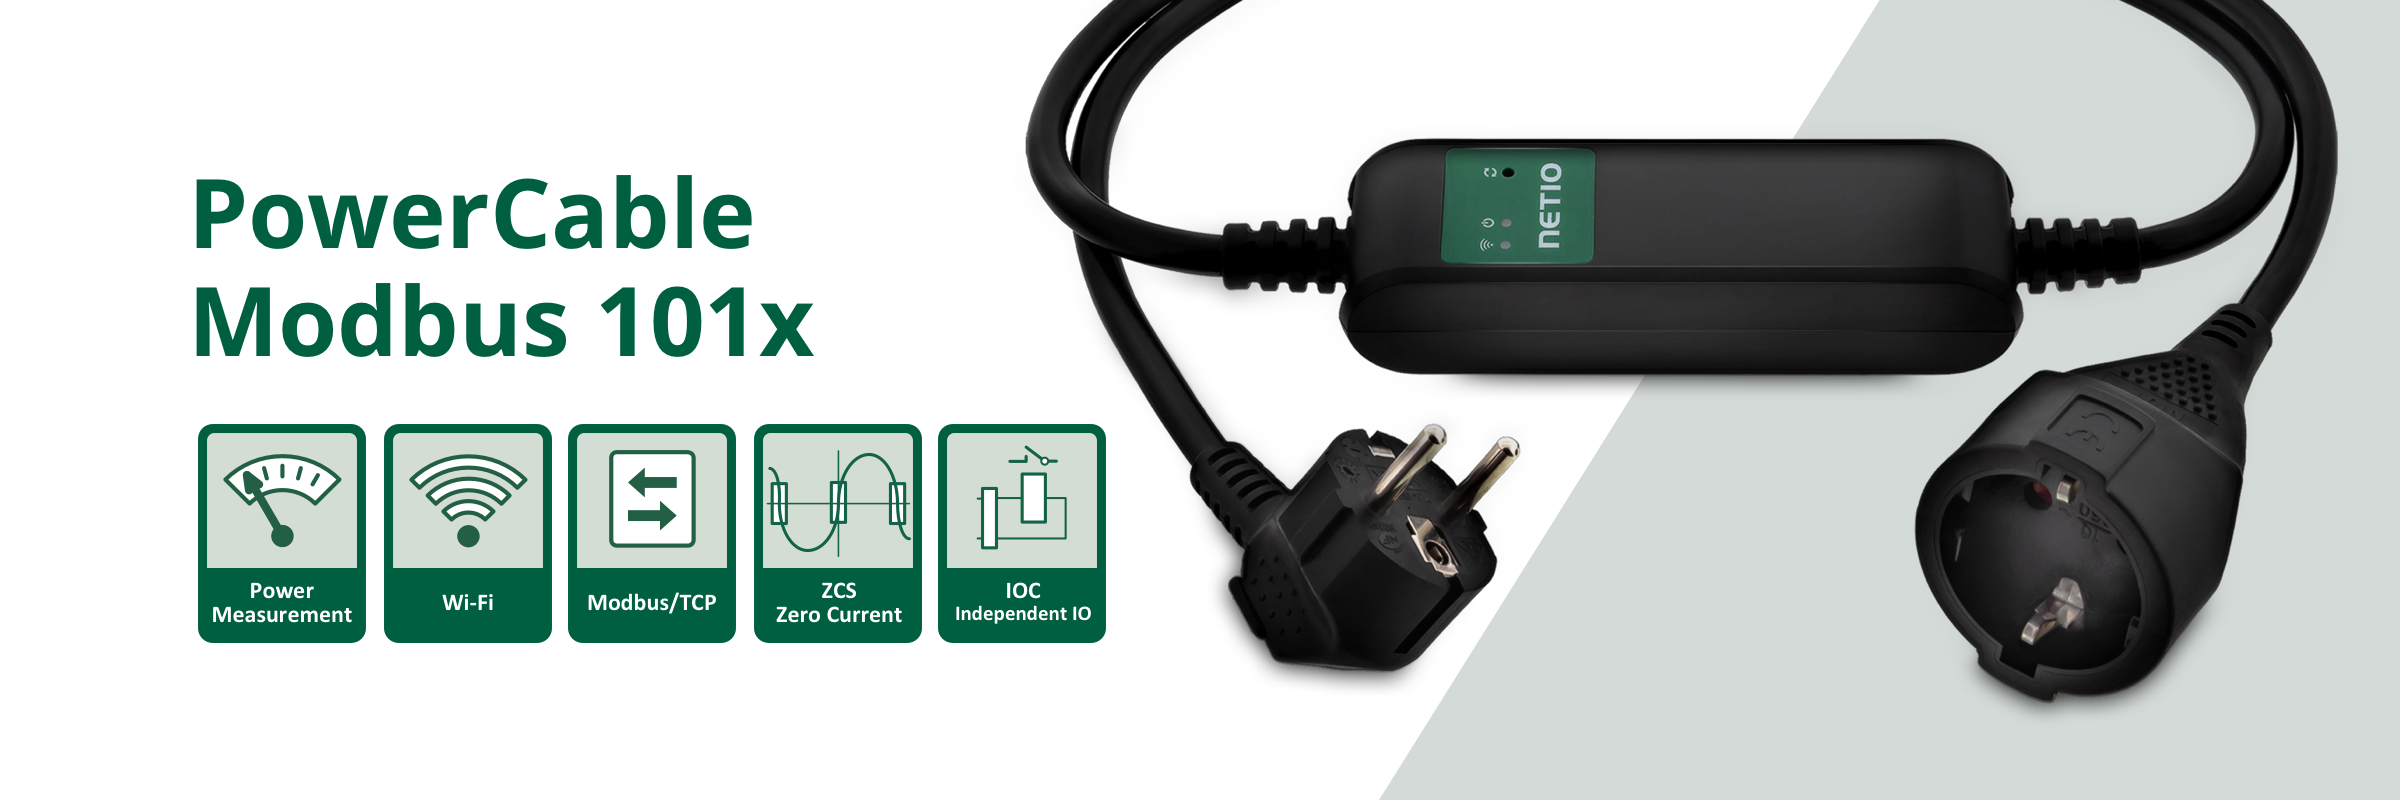 NETIO PowerCable Modbus 101x is a smart WiFi power socket by NETIO products. On/off over a web interface, electrical values (V, A, kWh, W, Hz, TruePF).